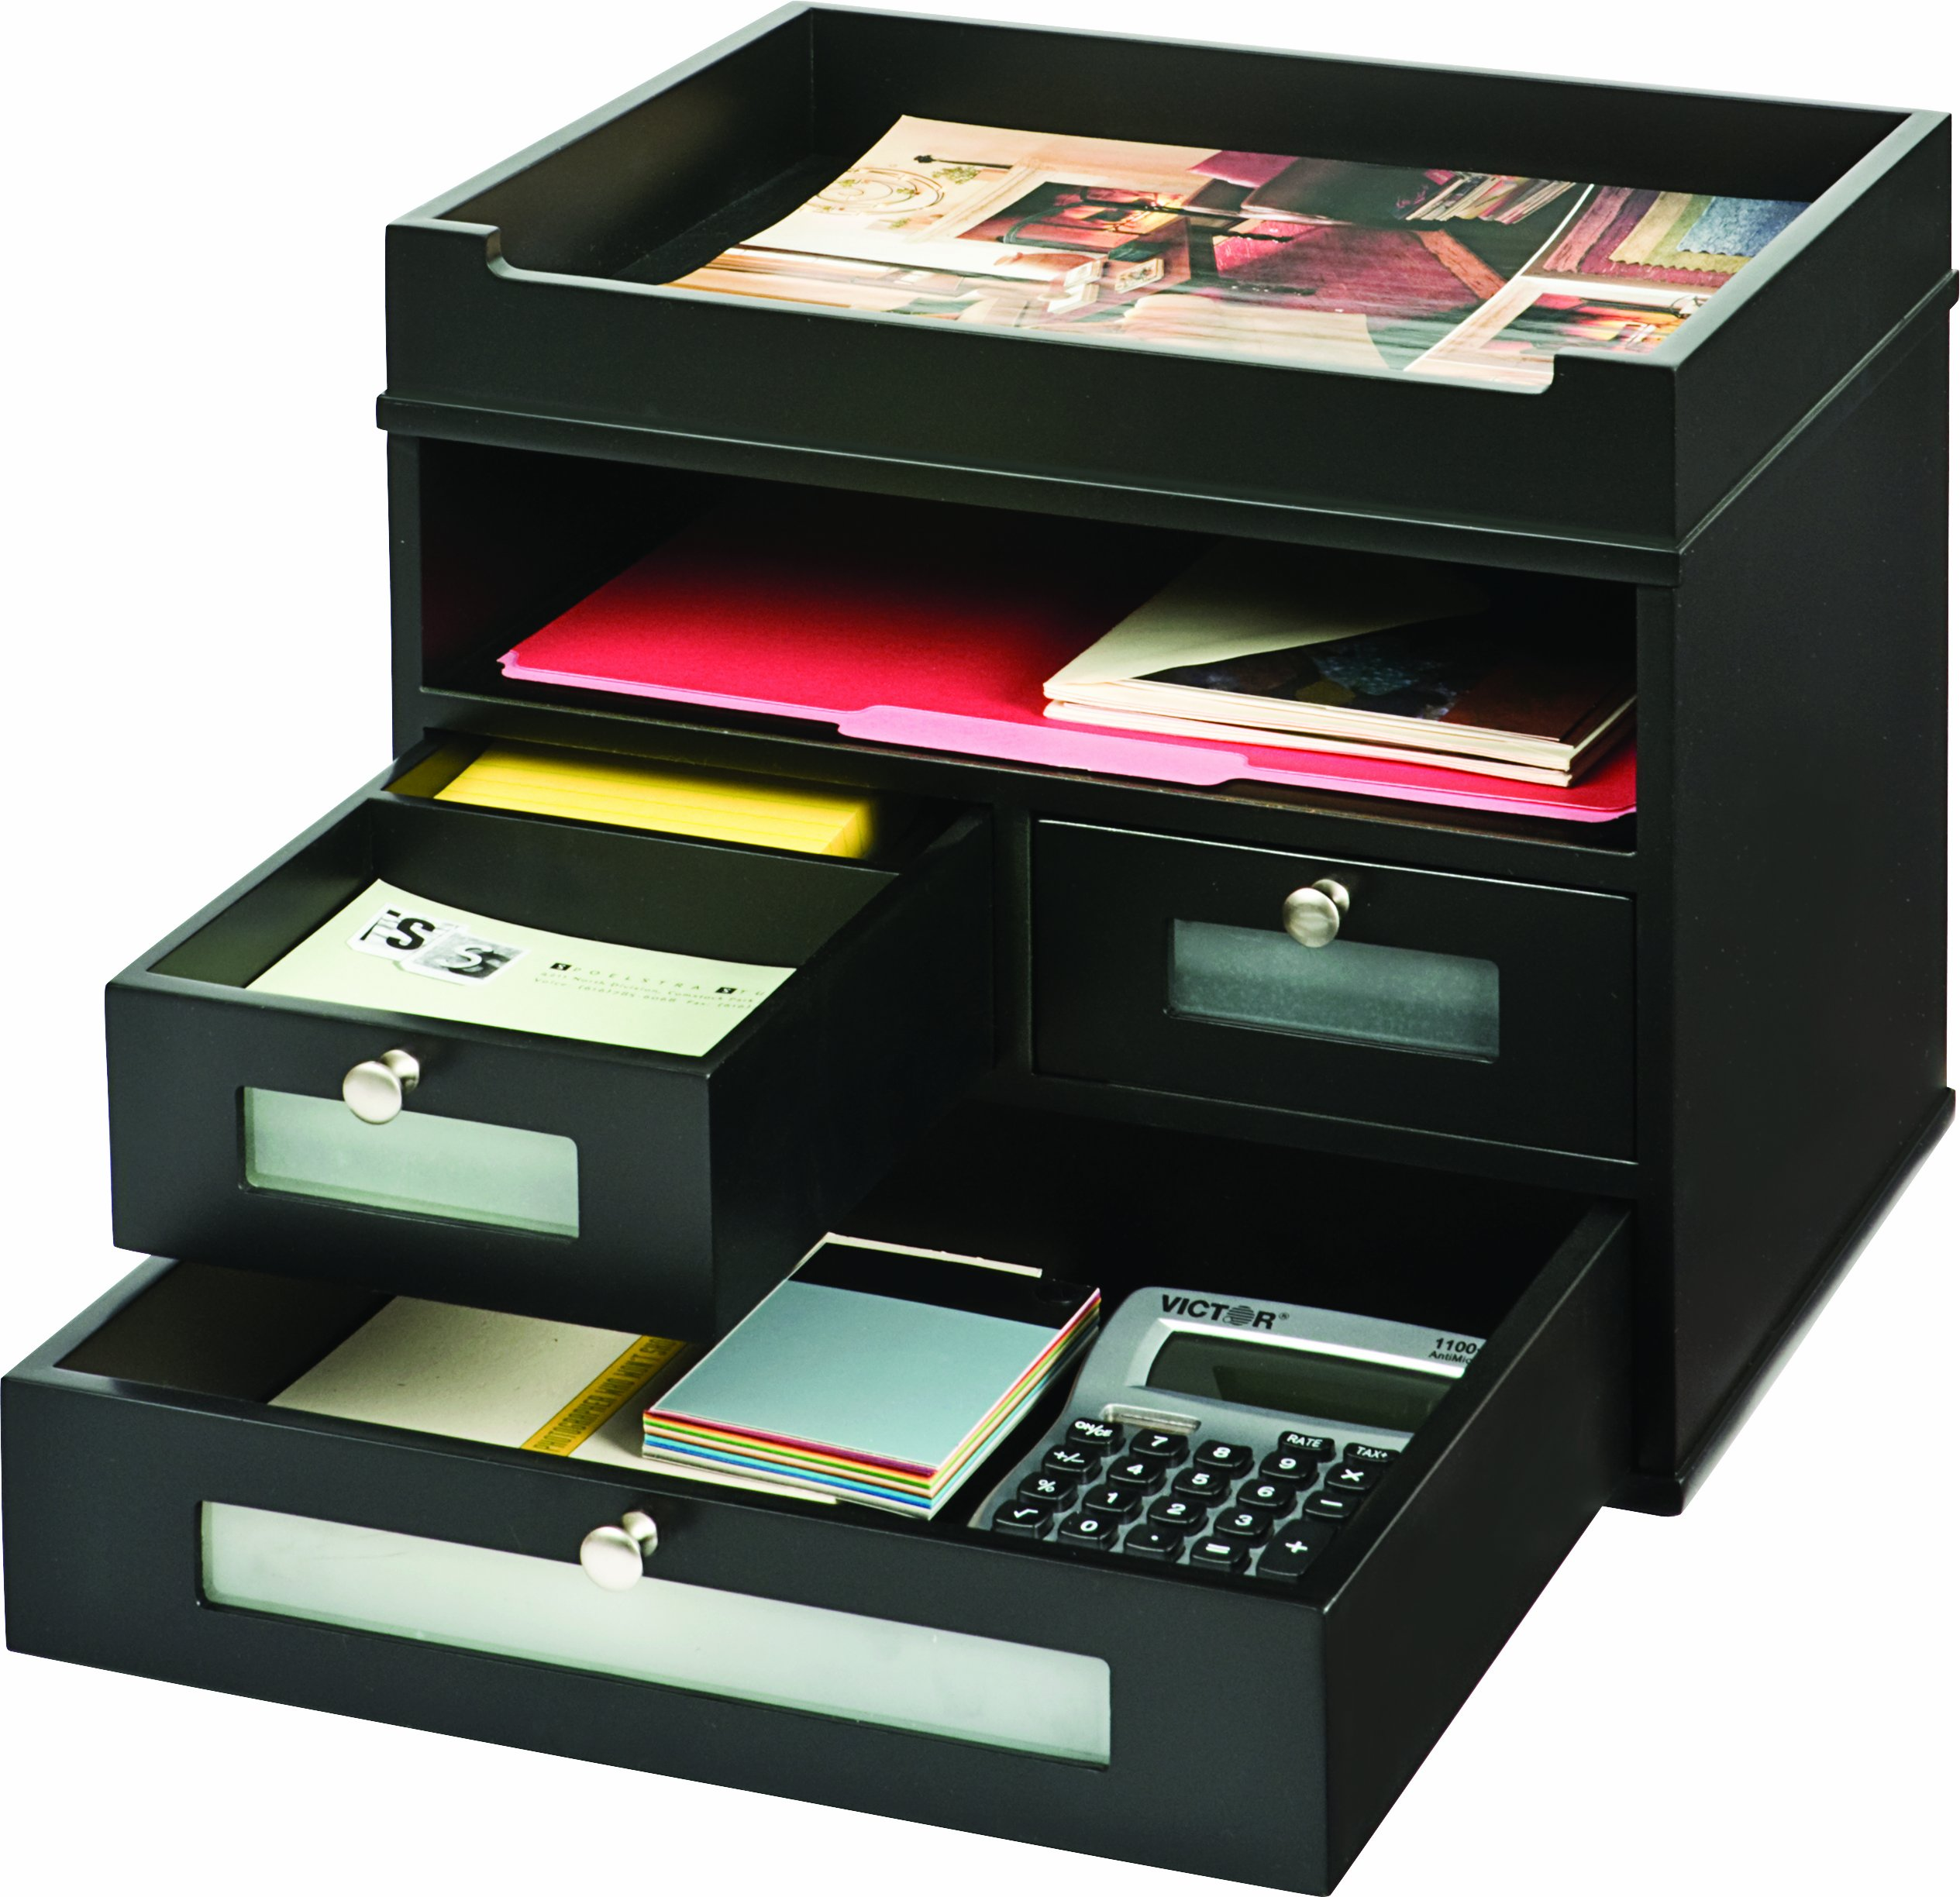 Victor Wood Midnight Black Collection, Tidy Tower Desktop Organizer, Black, (5500-5)